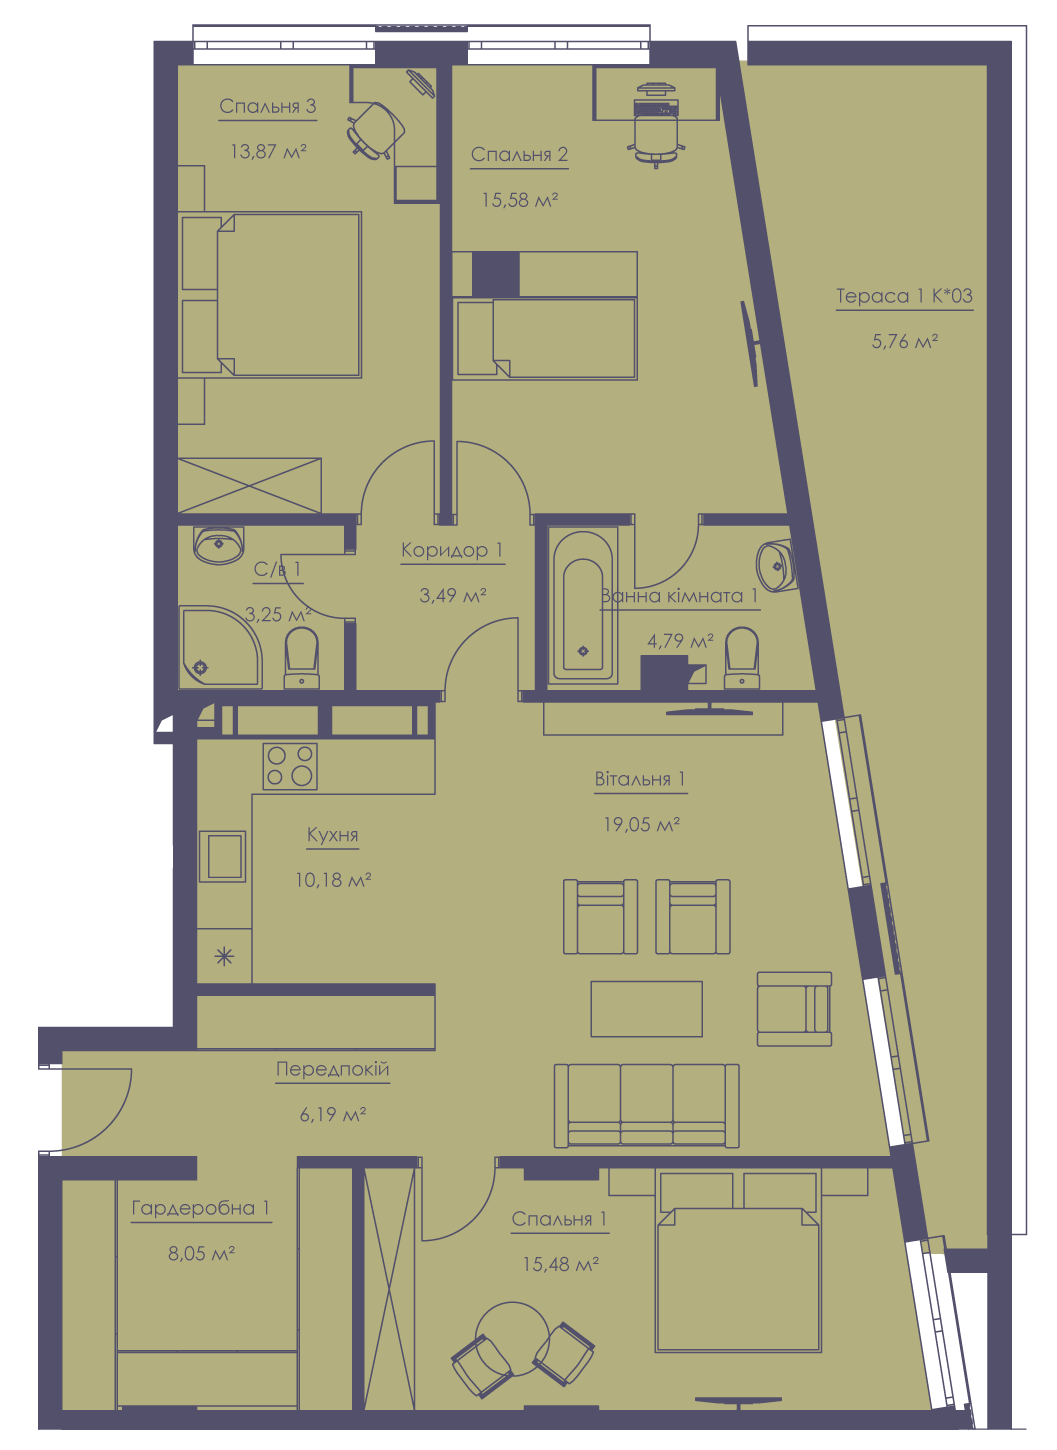 Apartment layout KV_122_3.4g_1_1_11-1